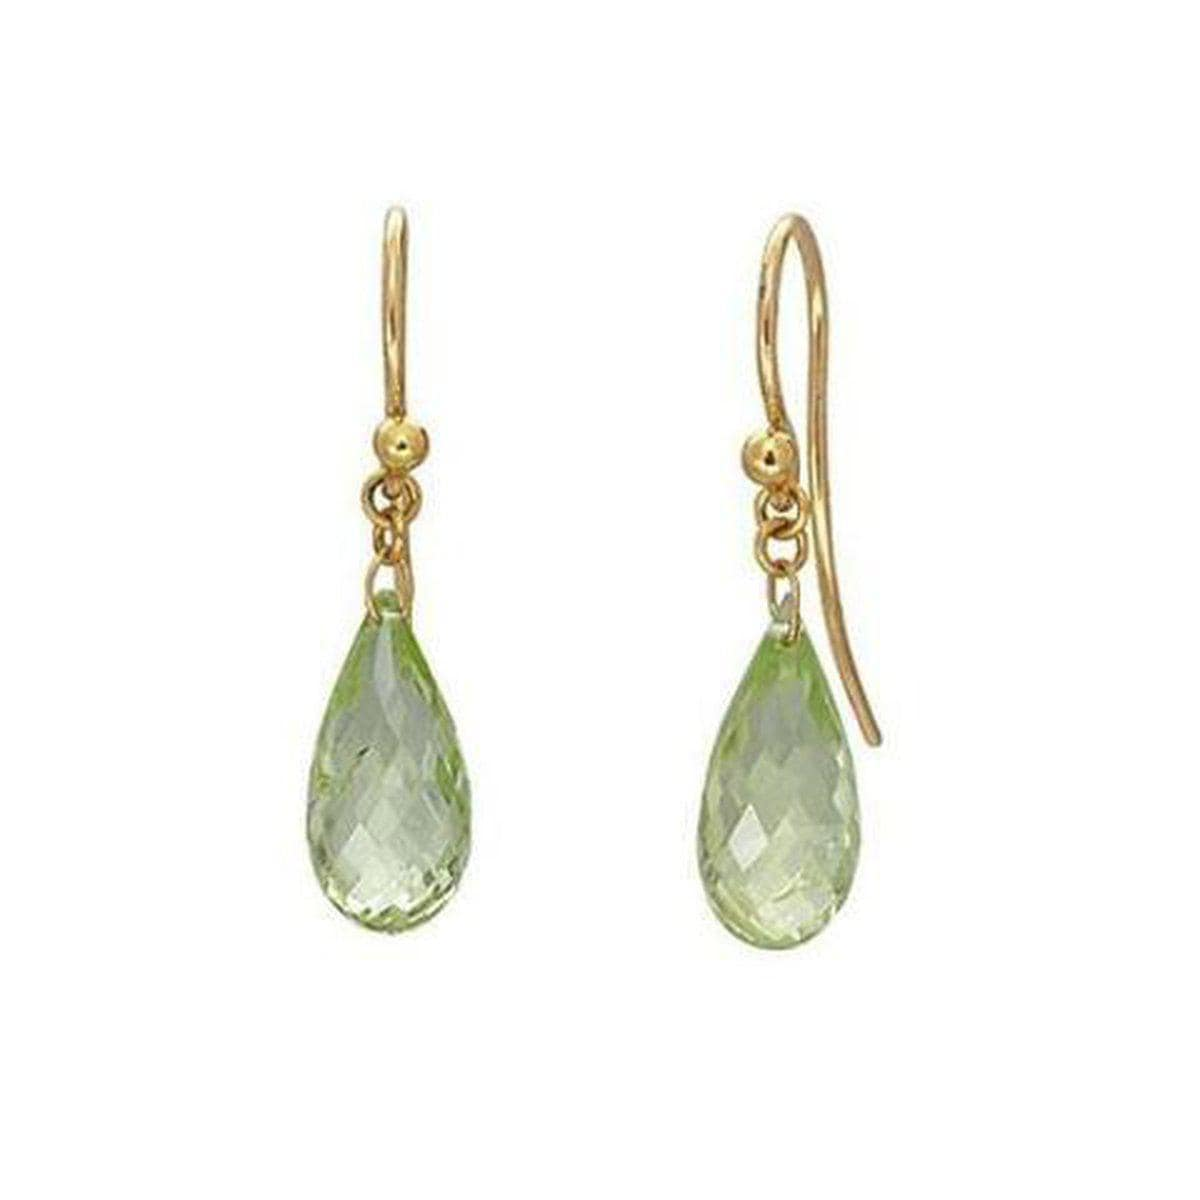 Delicate Hue 24K Gold Peridot Earrings - E-U23447-PD